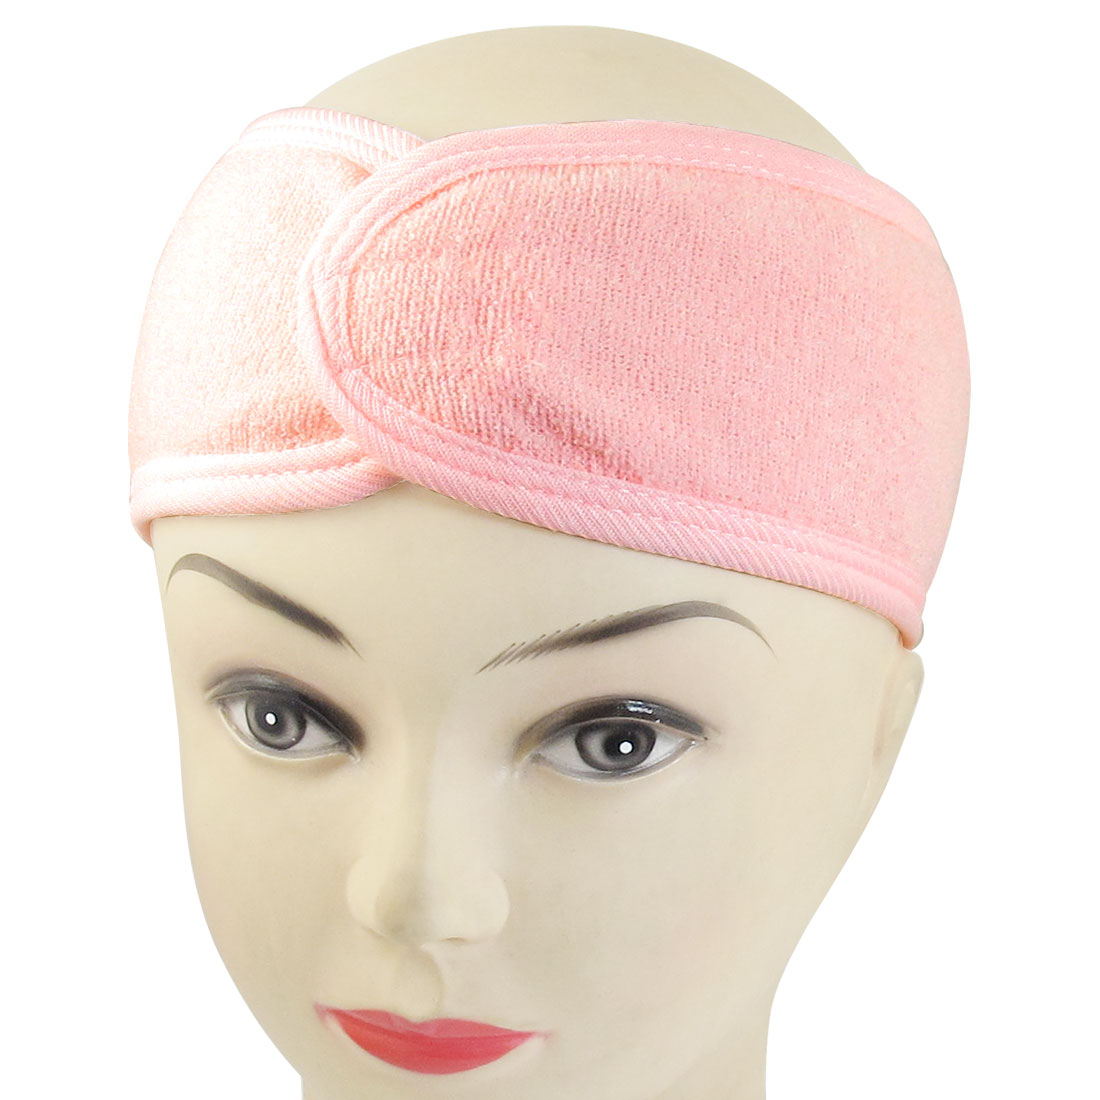 Unique Bargains Spa Bath Shower Make Up Wash Face Cosmetic Headband Hair Band Pink